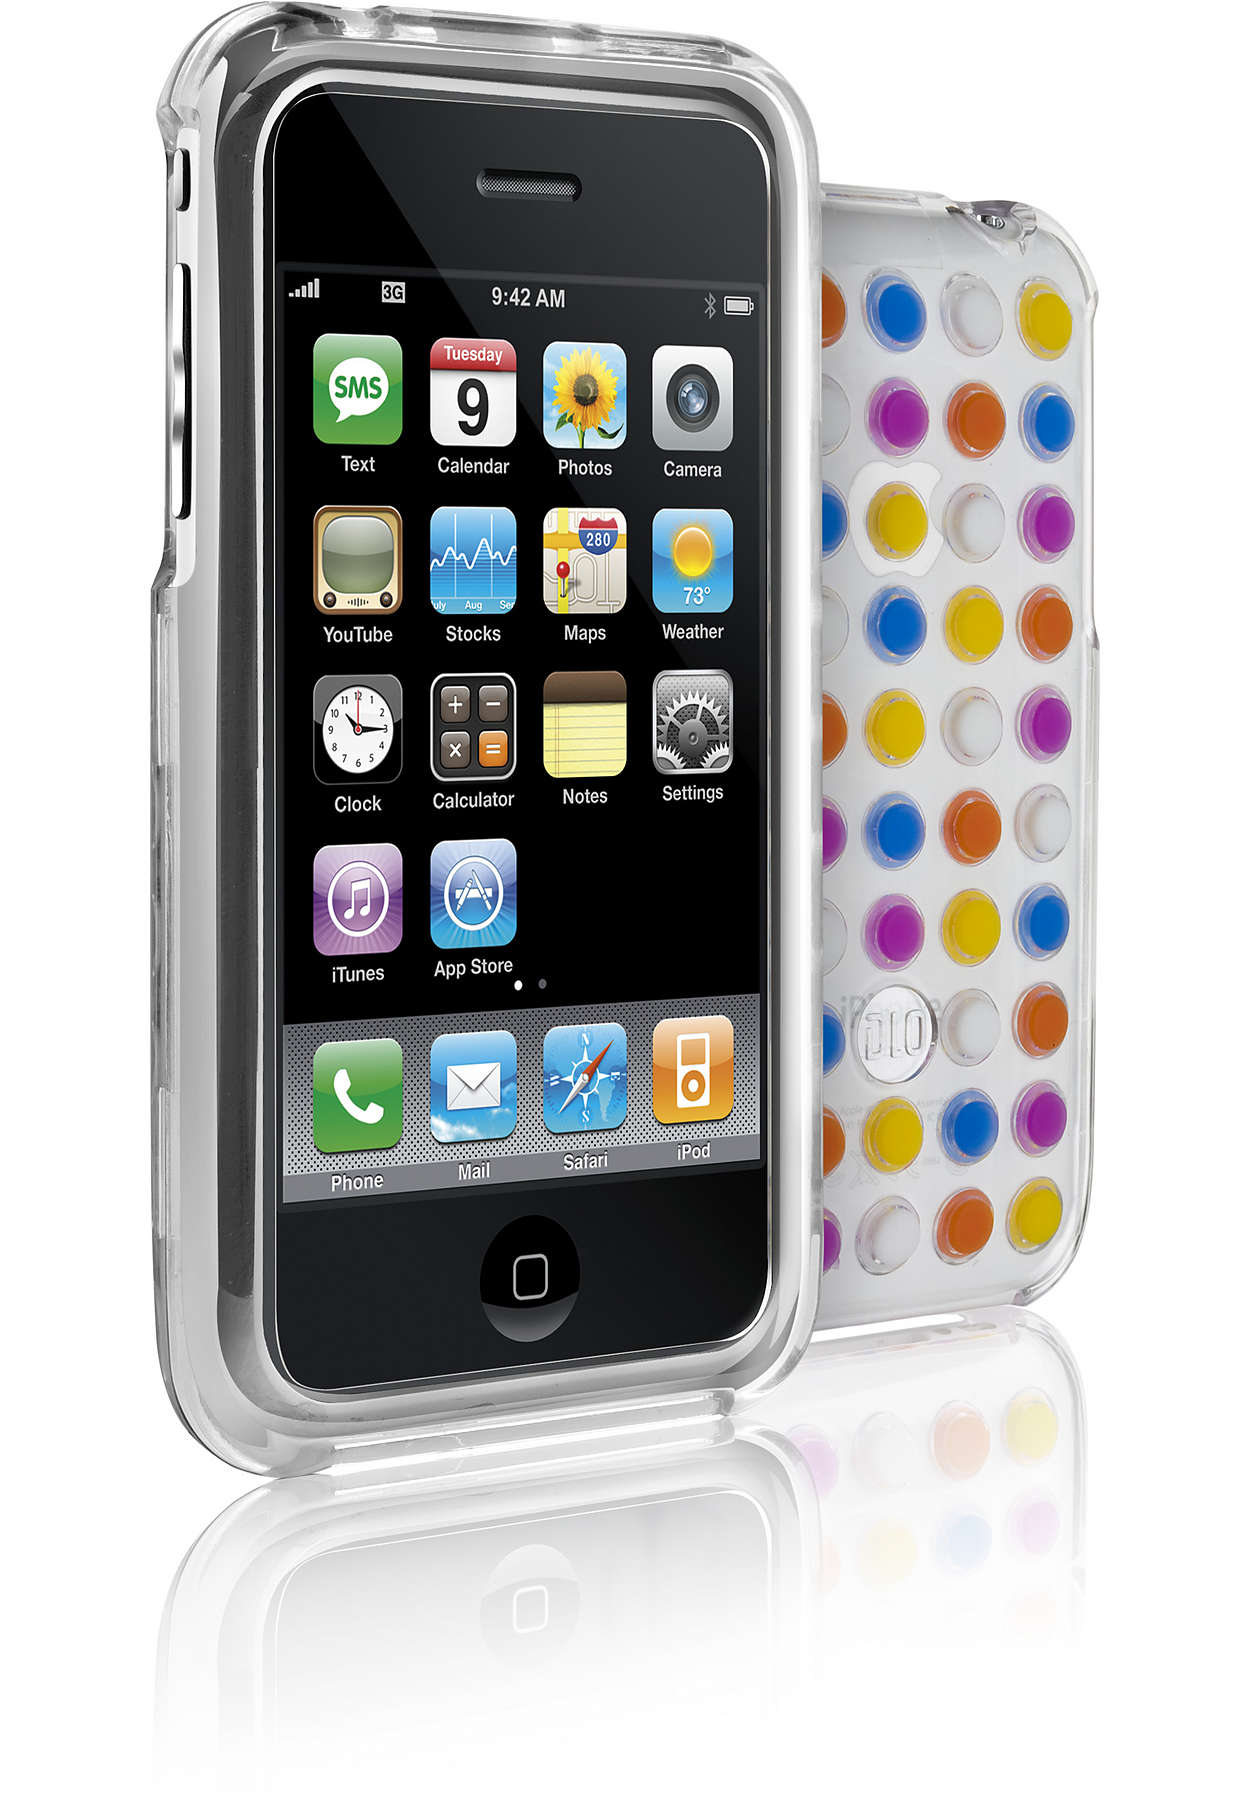 Protege tu iPhone con una funda transparente